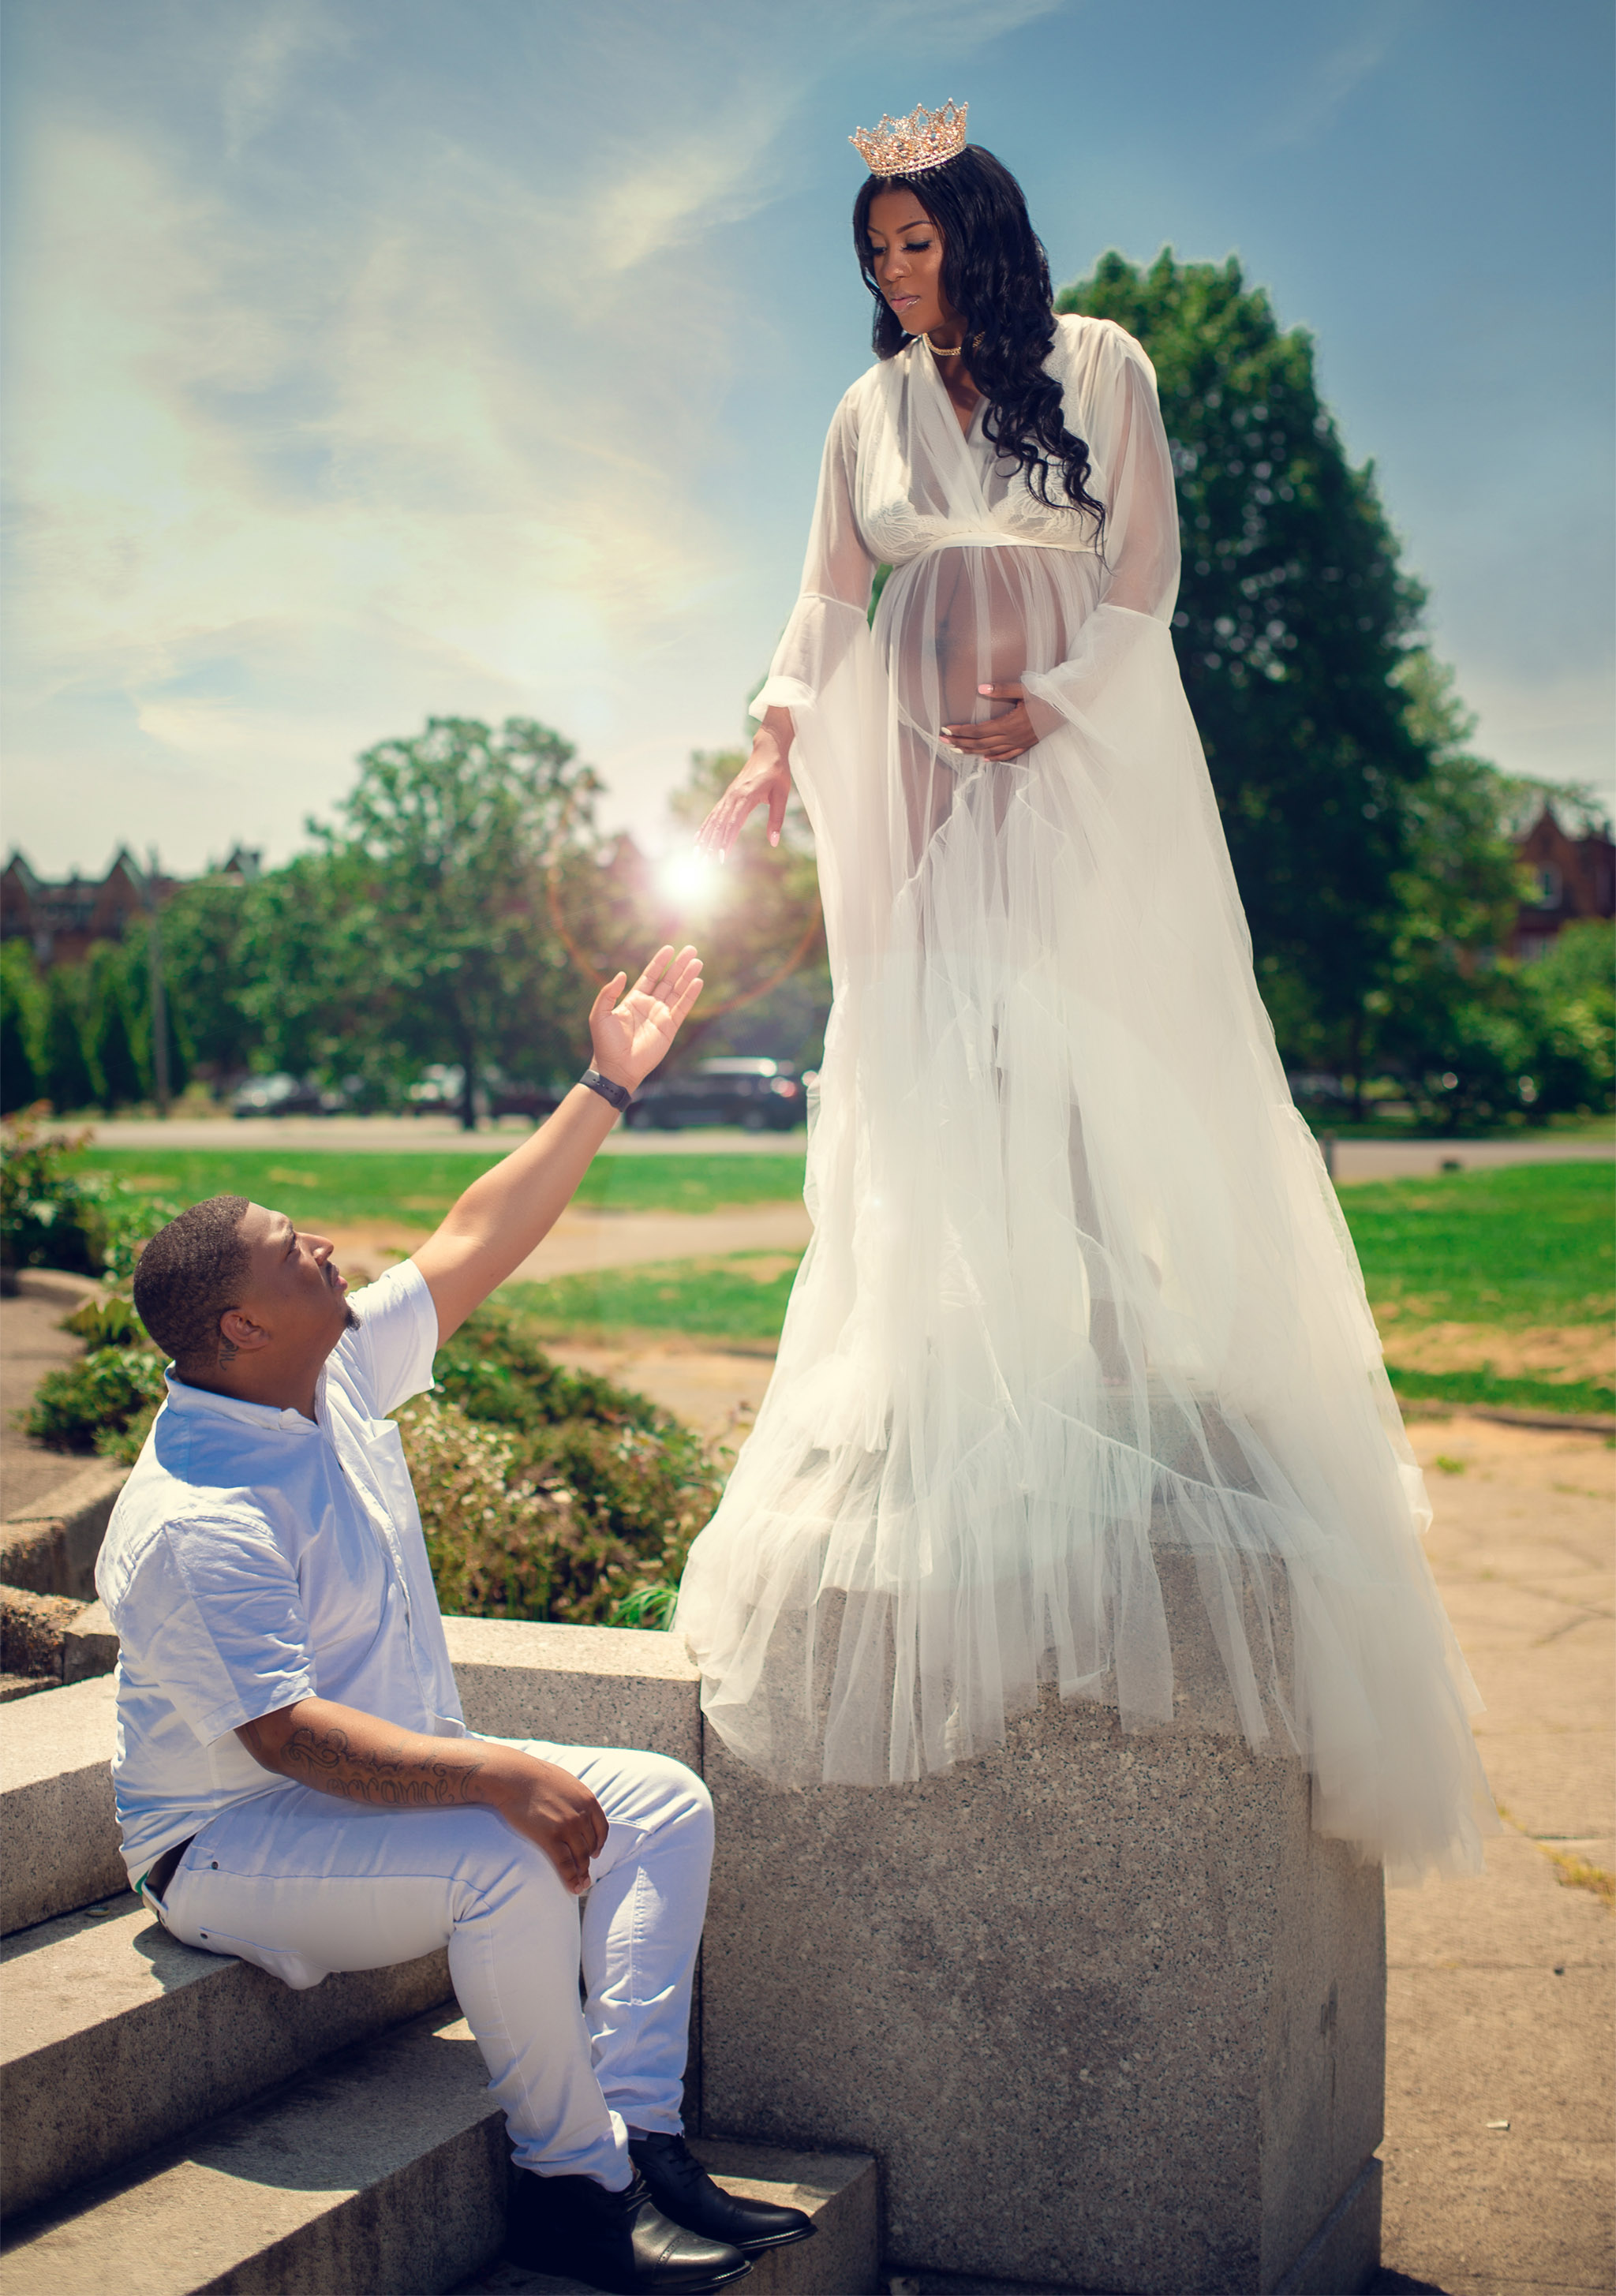 Safety Positivity And Love Philly Couple S Maternity Photos Go Viral With Message Of Hope On Top Of Philly News